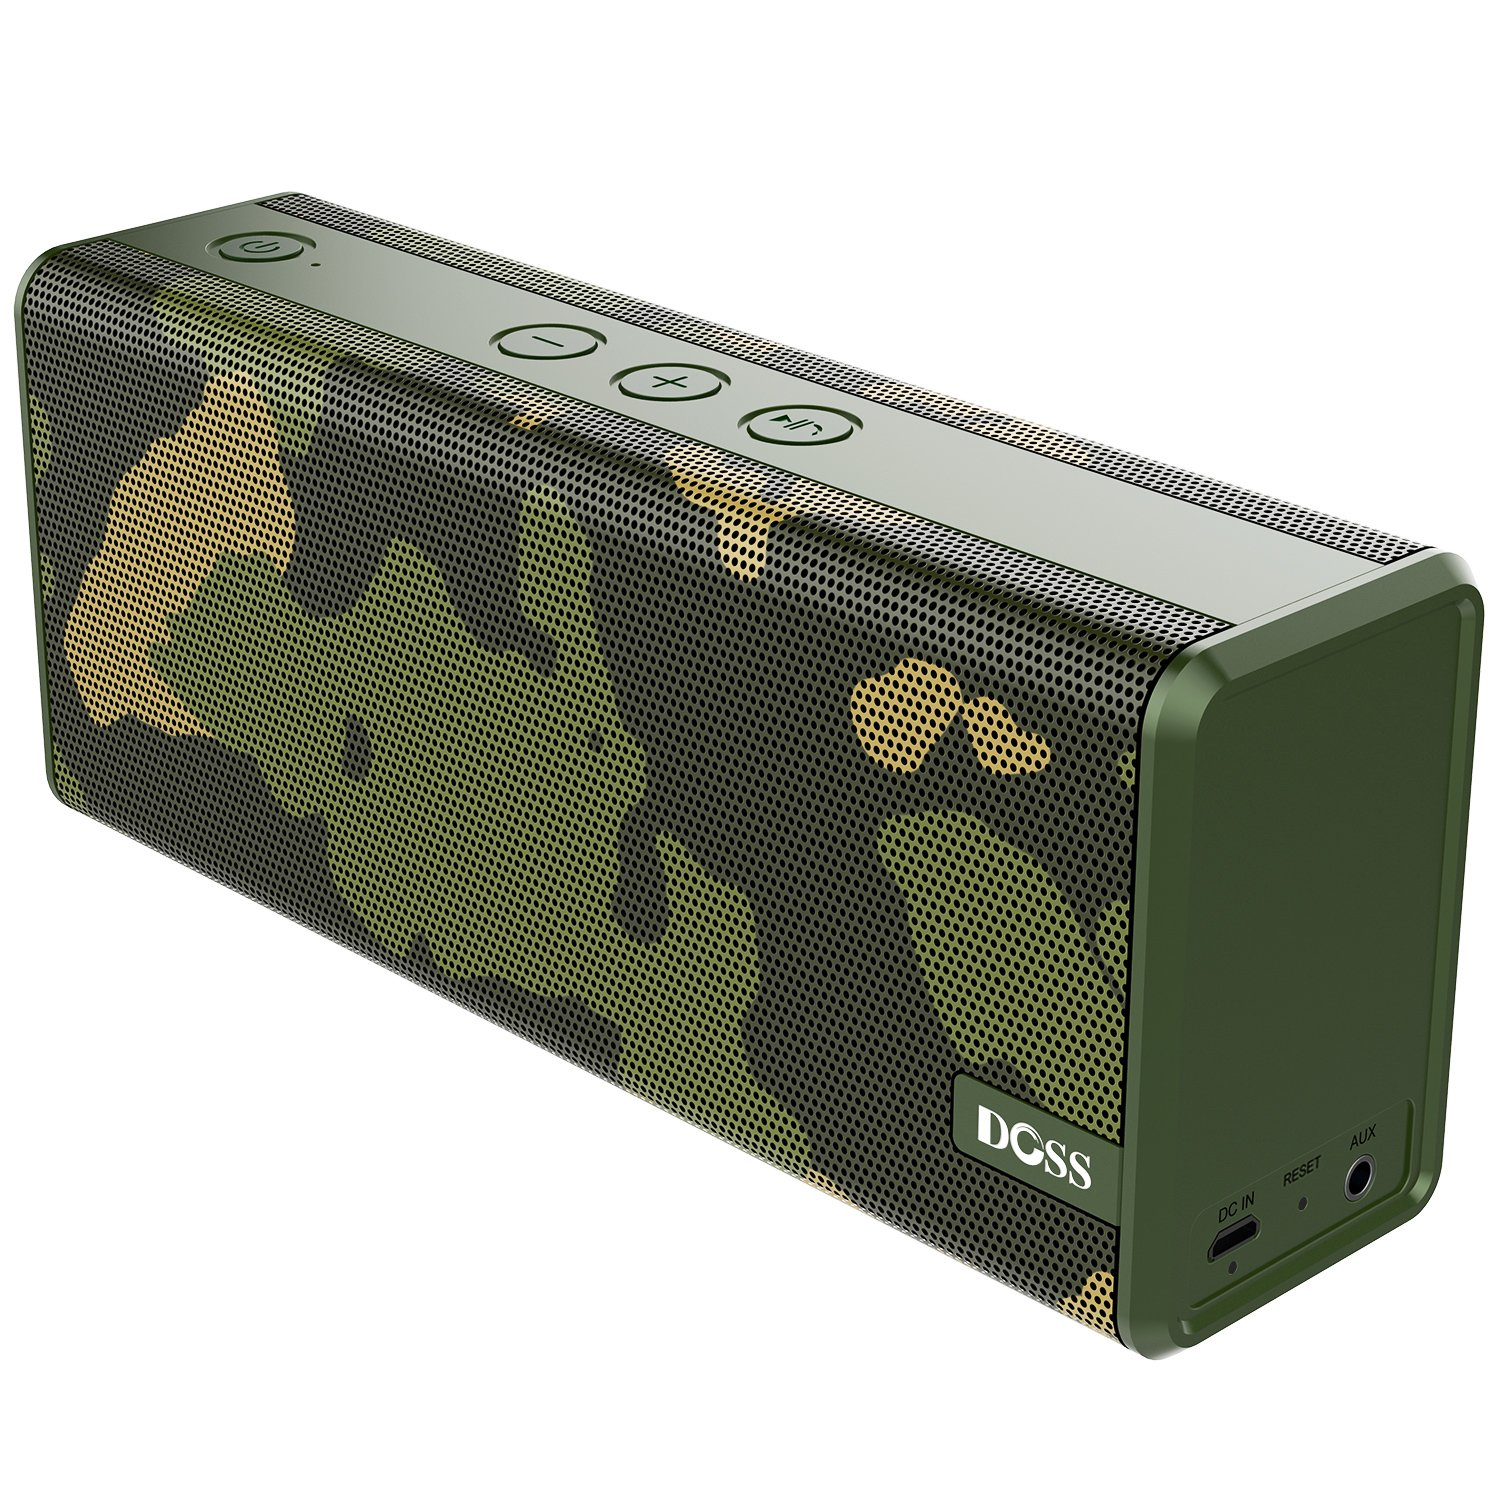 Bluetooth Speakers,DOSS SoundBox Color Portable Wireless Bluetooth 4.0 Speakers with 12W Stereo Sound and Enhanced Bass, 12 Hours Playtime and handsfree for Phone, Tablet, TV, [Camouflage]